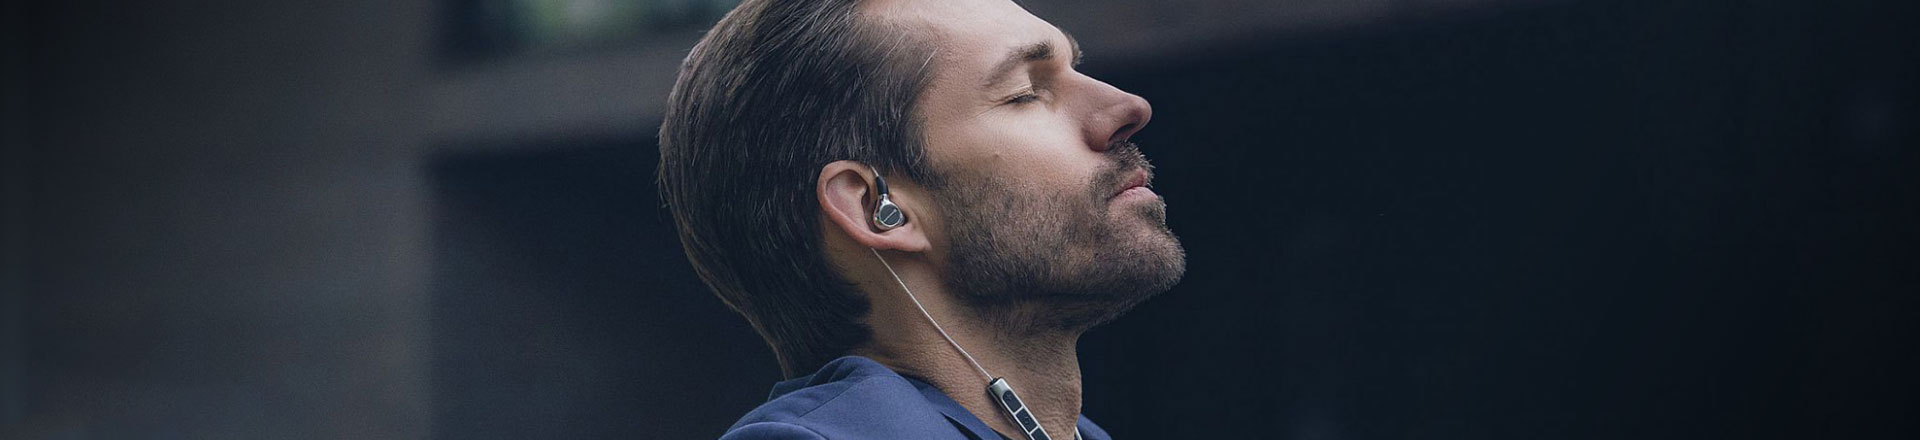 BEYERDYNAMIC: XELENTO WIRELESS - Hi-End z przetwornikami Tesla